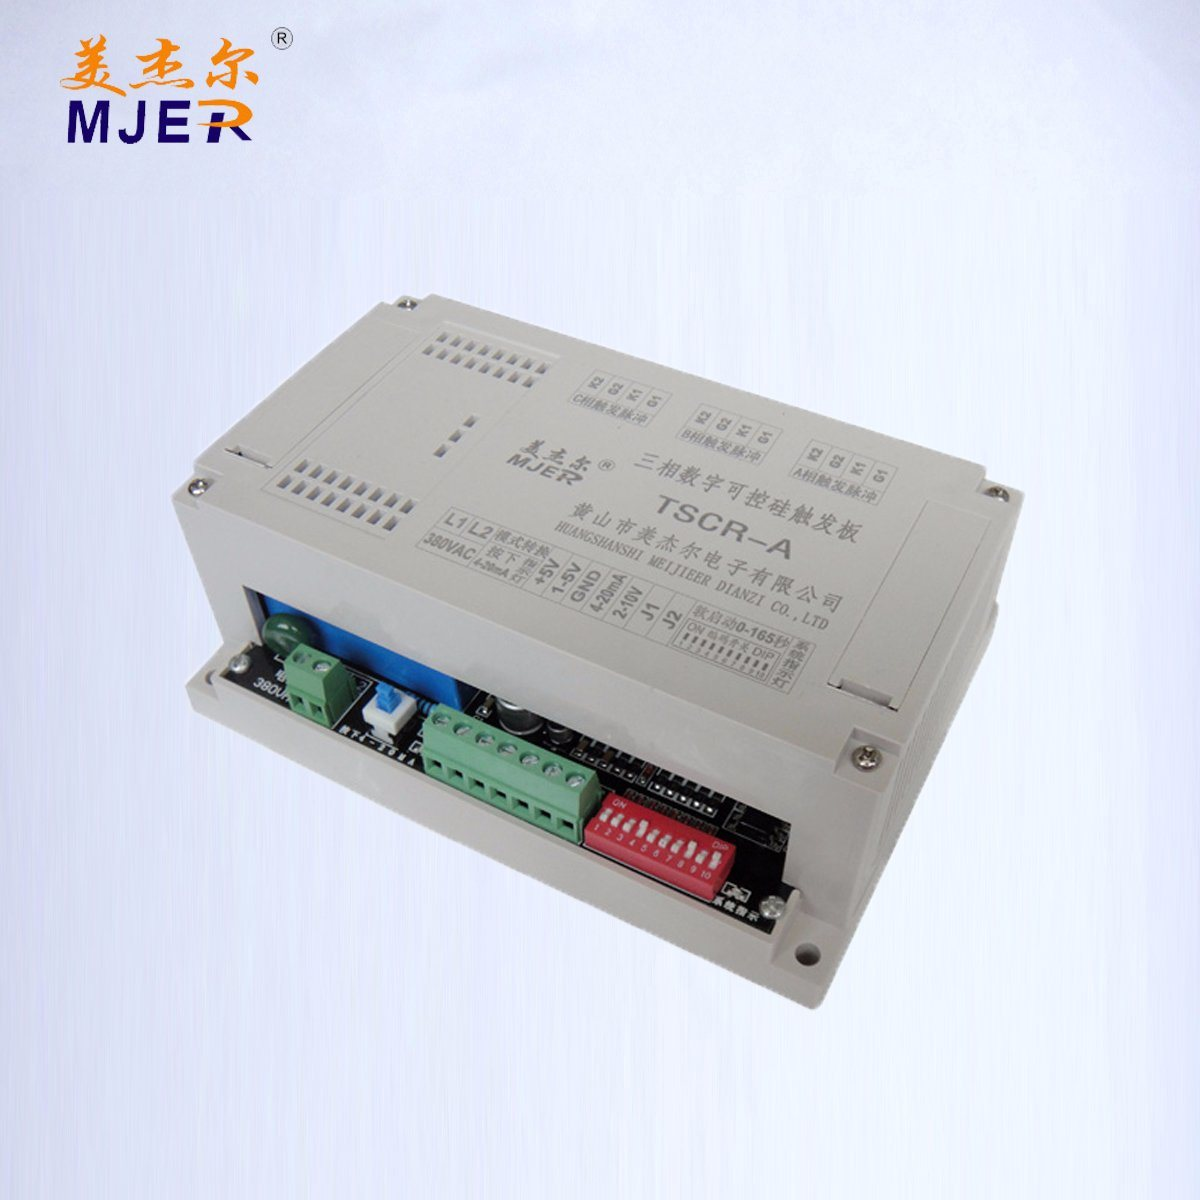 China Three Phase Digital Thyristor Trigger Plate Board Tcsr A Scr Need For Thyristors In Power Electronic Circuits Electrical